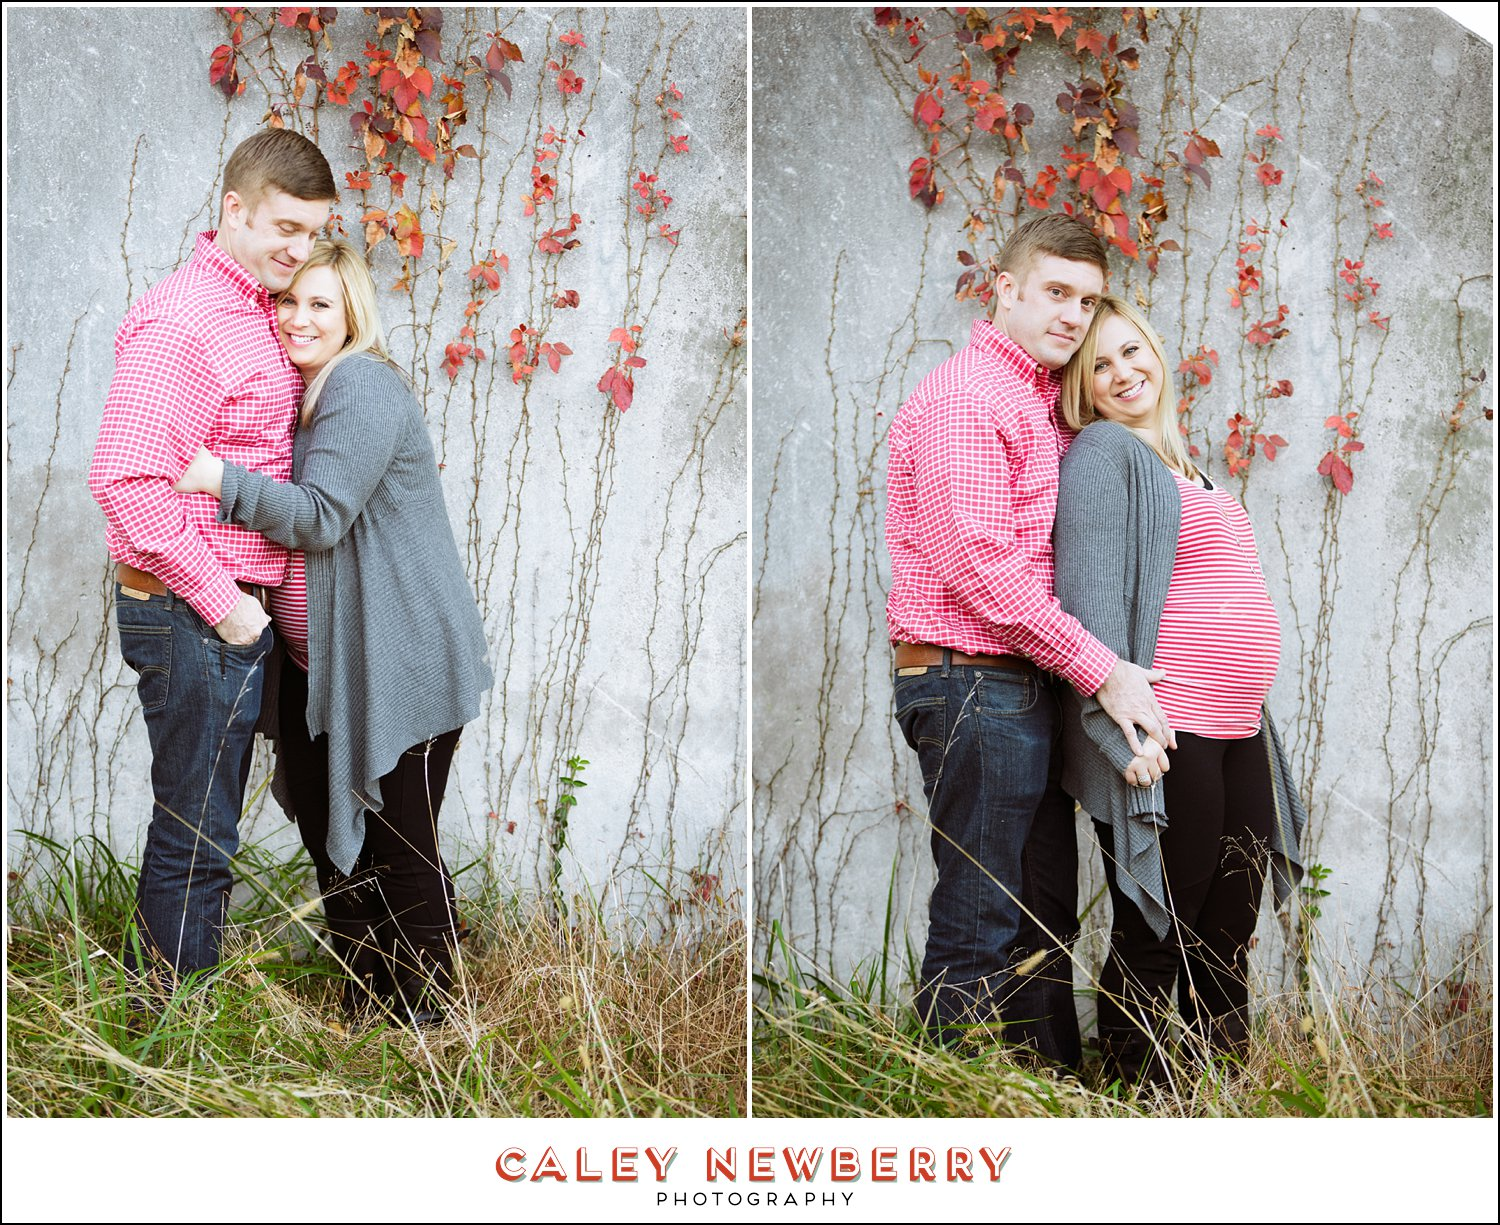 leiper's fork photo, franklin tn photography, nashville maternity photogrpahy, nashville photographer, caley newberry photography, bing sanders, janelle sanders, fall photo shoot, fall maternity shoot